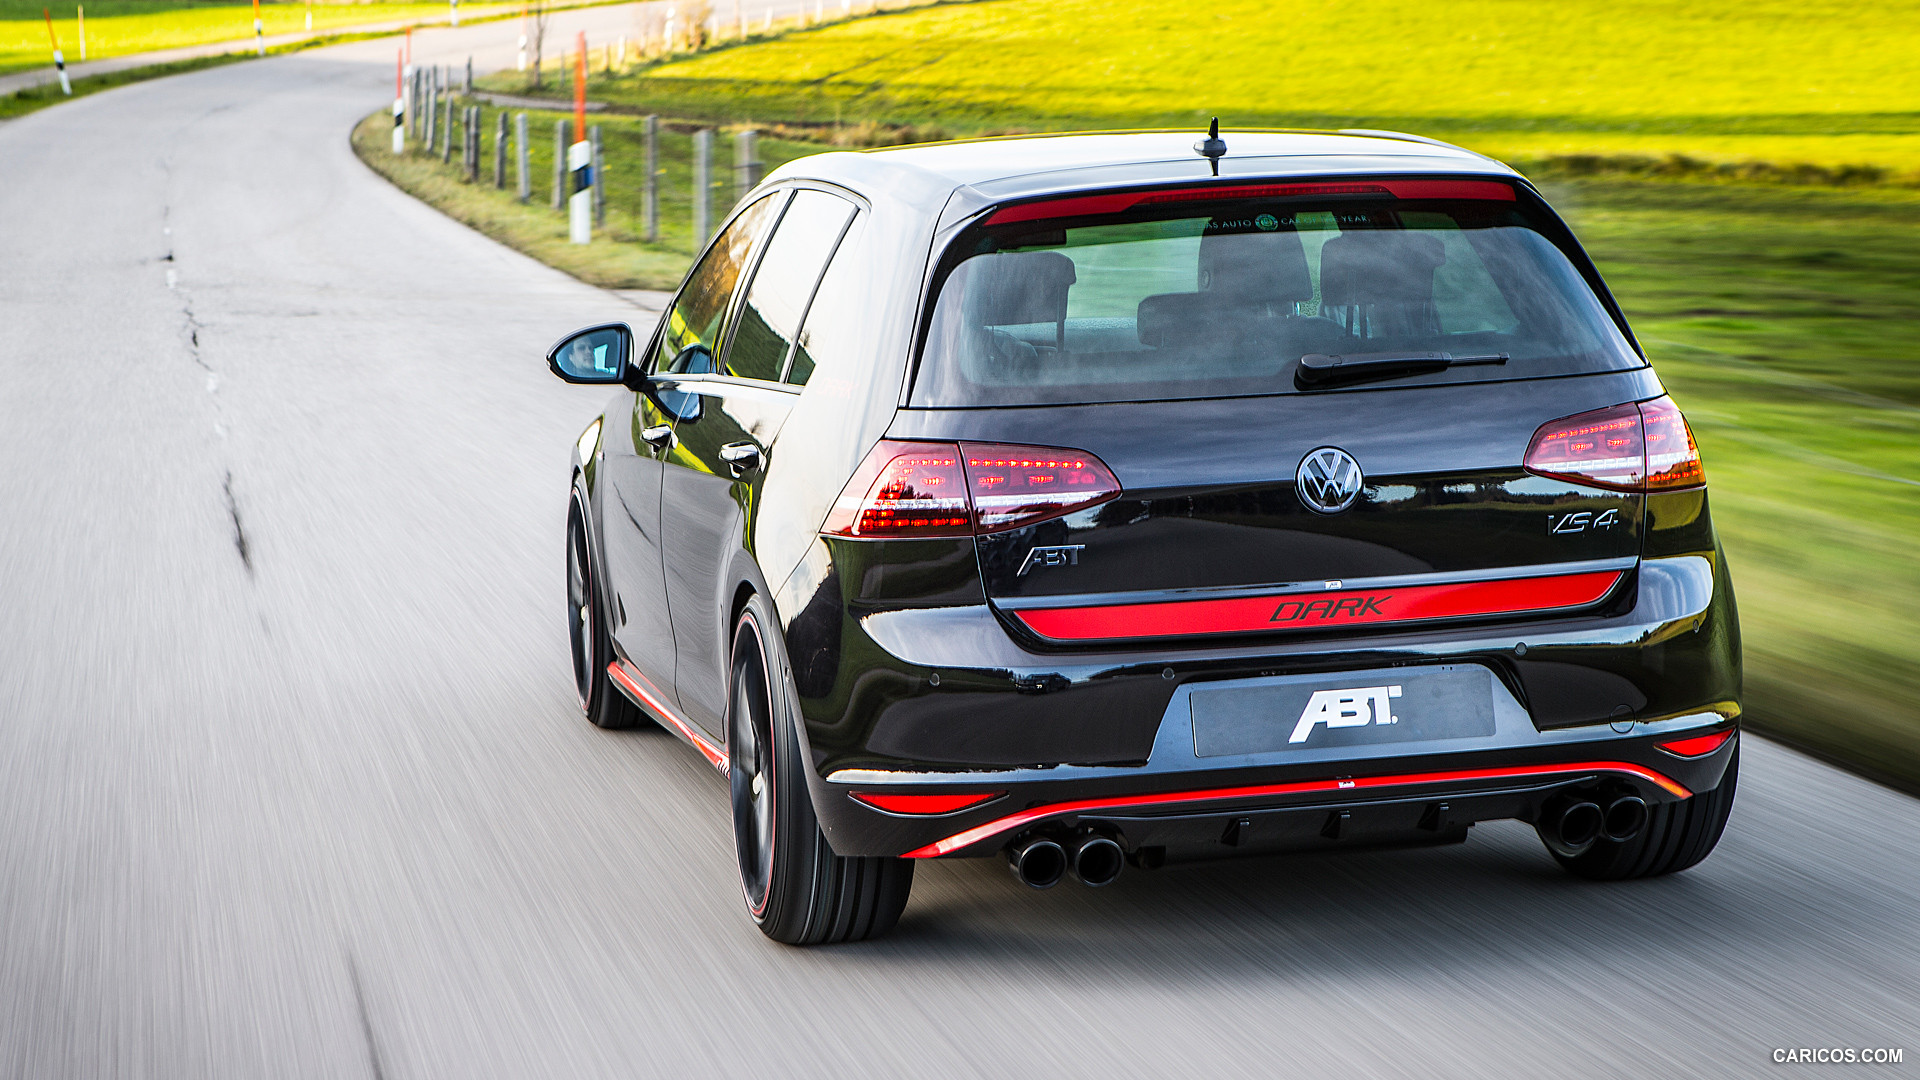 Volk Wagon Volkswagen Golf 7 Gti Wallpaper